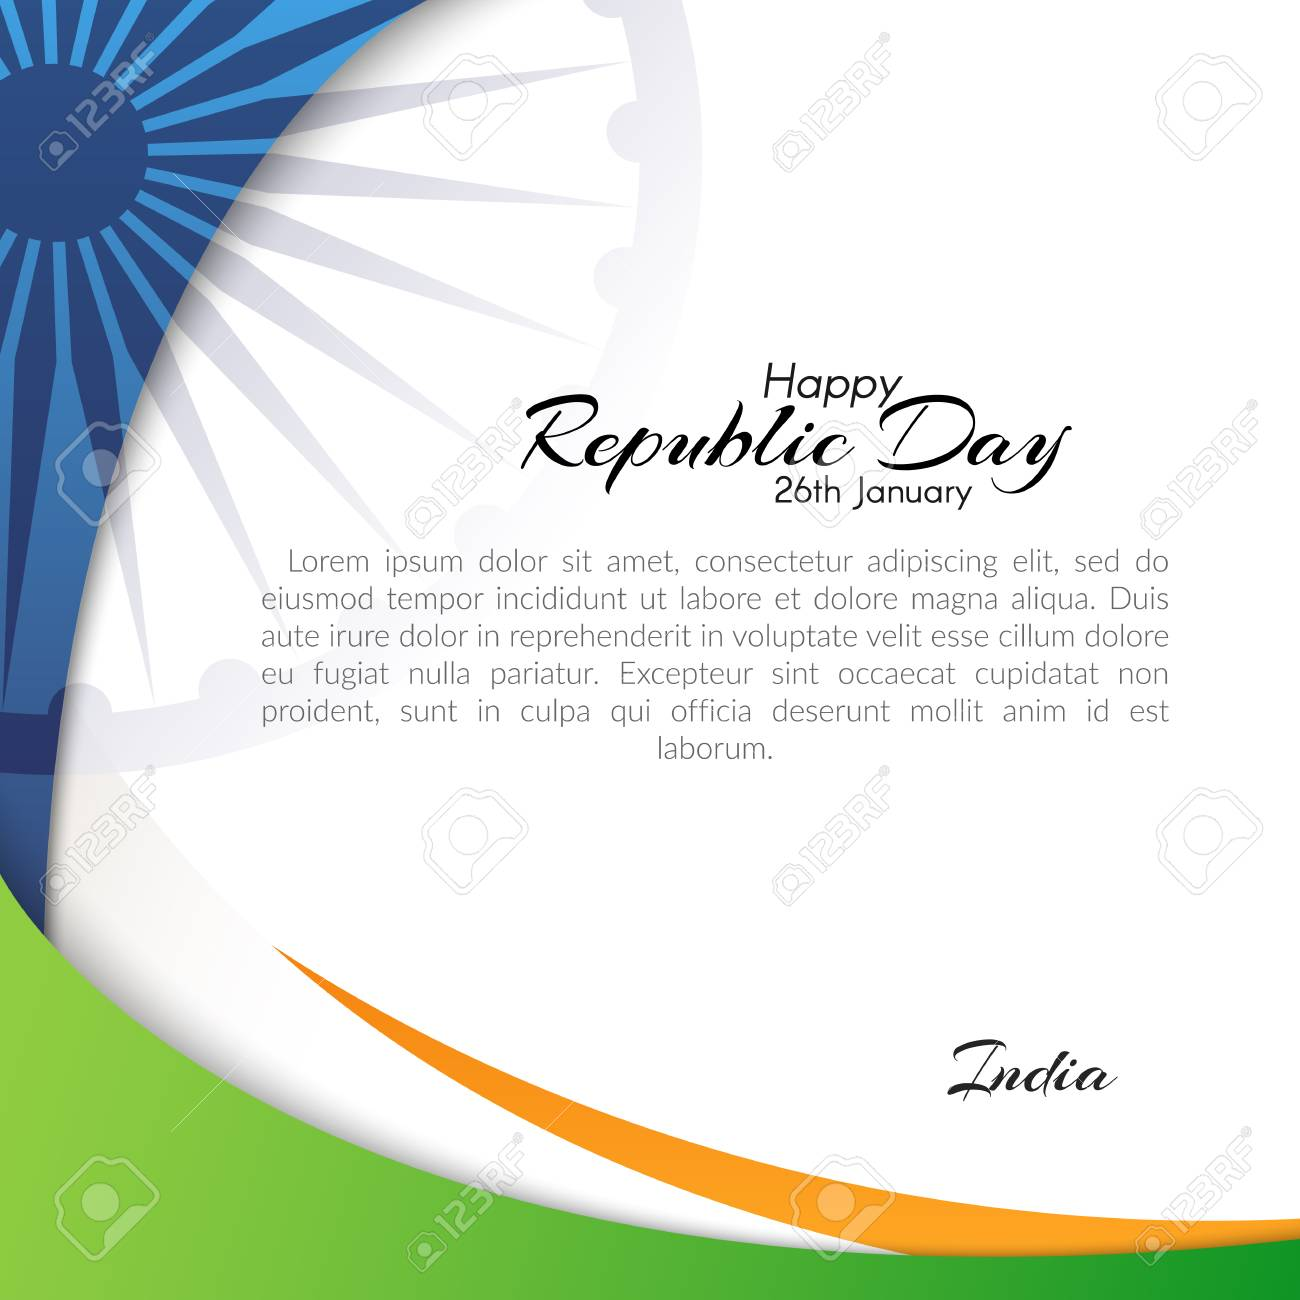 Banner With The Text Of The Republic Day In India On January